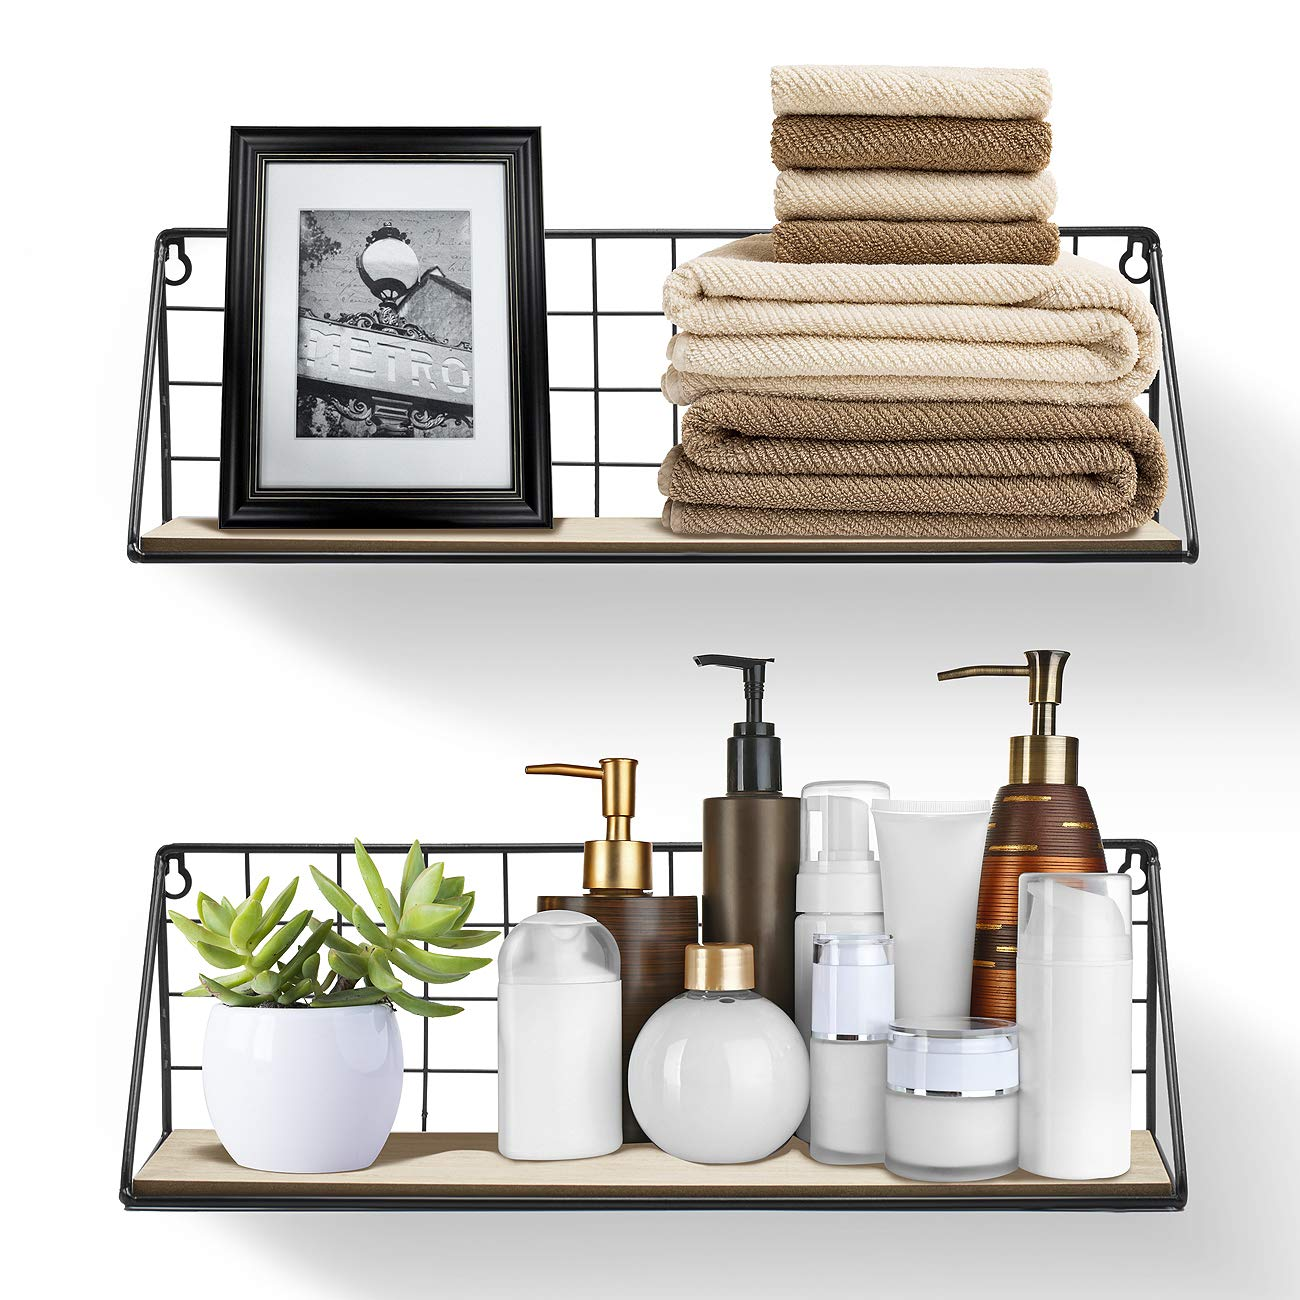 Bathroom Decorative Items etc Office Bedroom Sorbus Floating Shelves Wall Mounted Rustic Wood Storage Set for Picture Frames Great for Living Room Collectibles FLT-MTLSHLA Kitchen 2-Pack, Natural